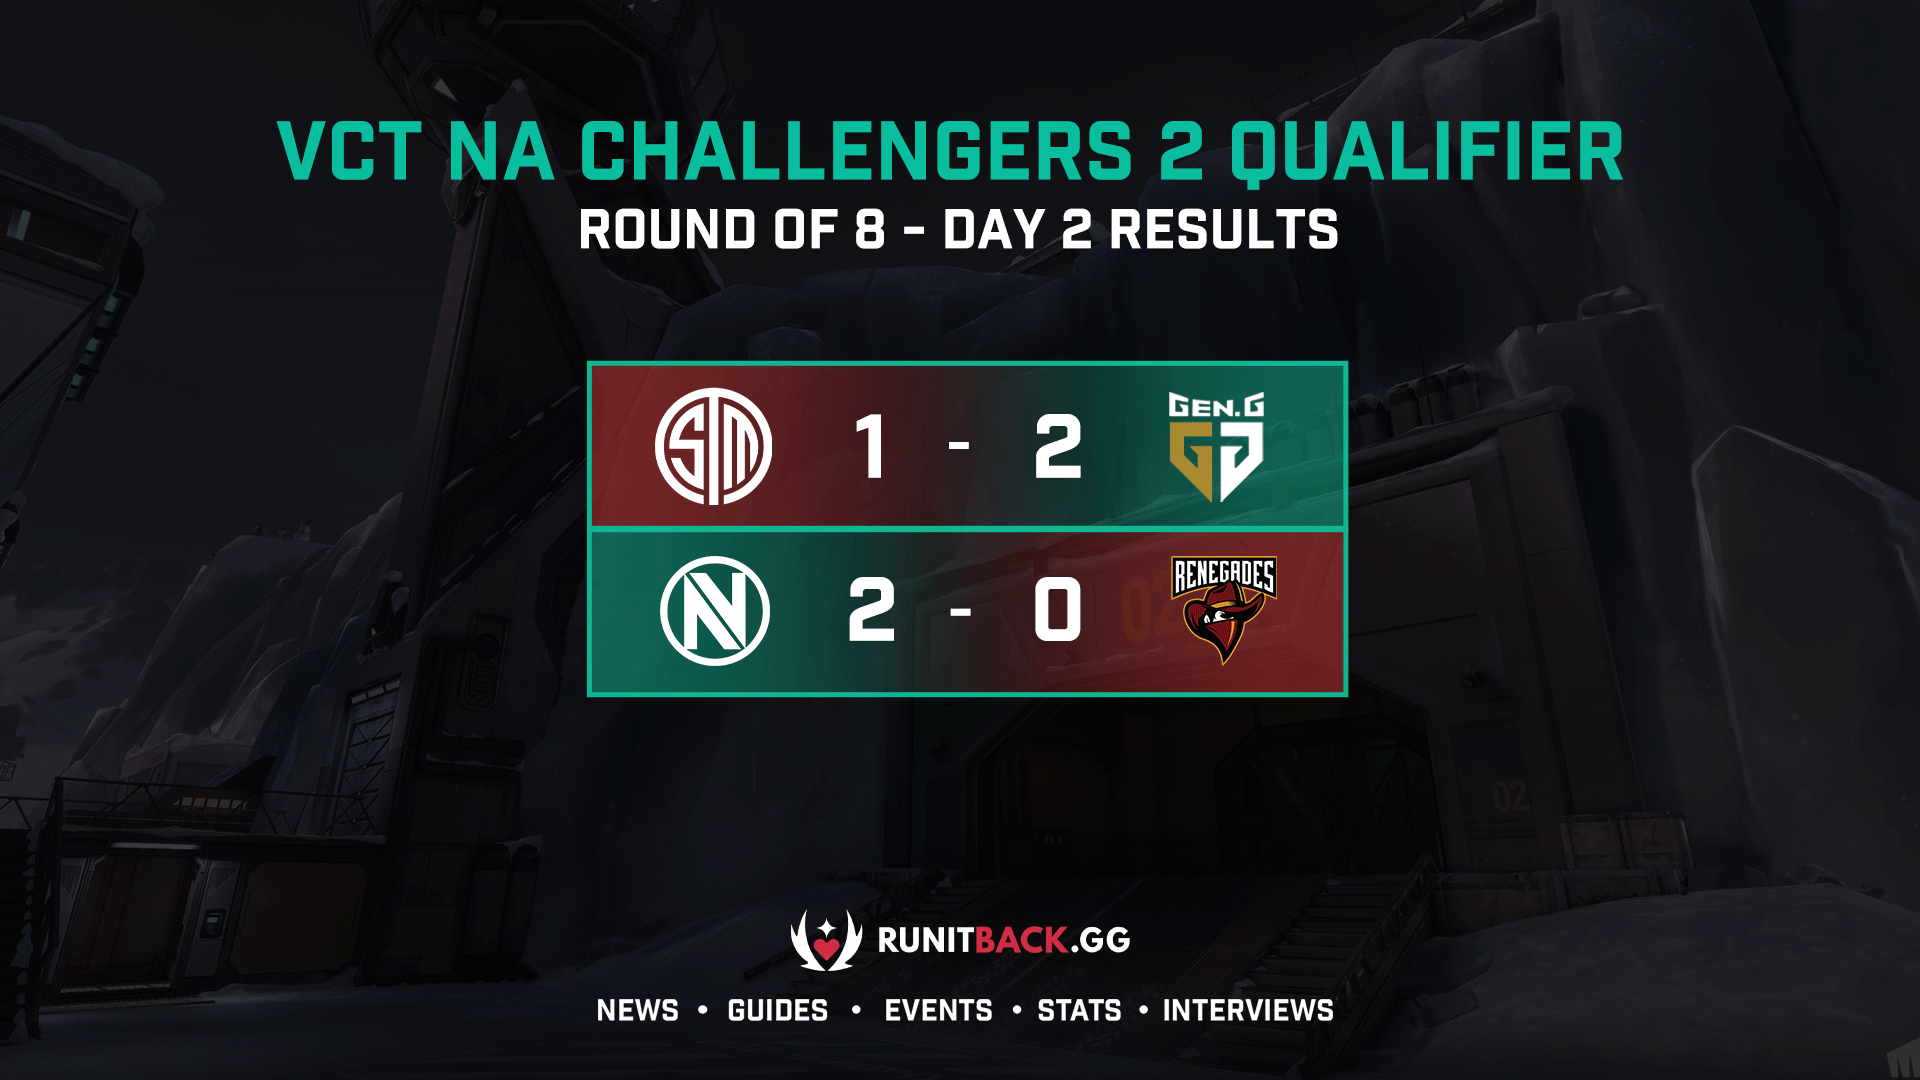 VCT NA Challengers 2 Qualifier: Round of 8 Day 2 Results